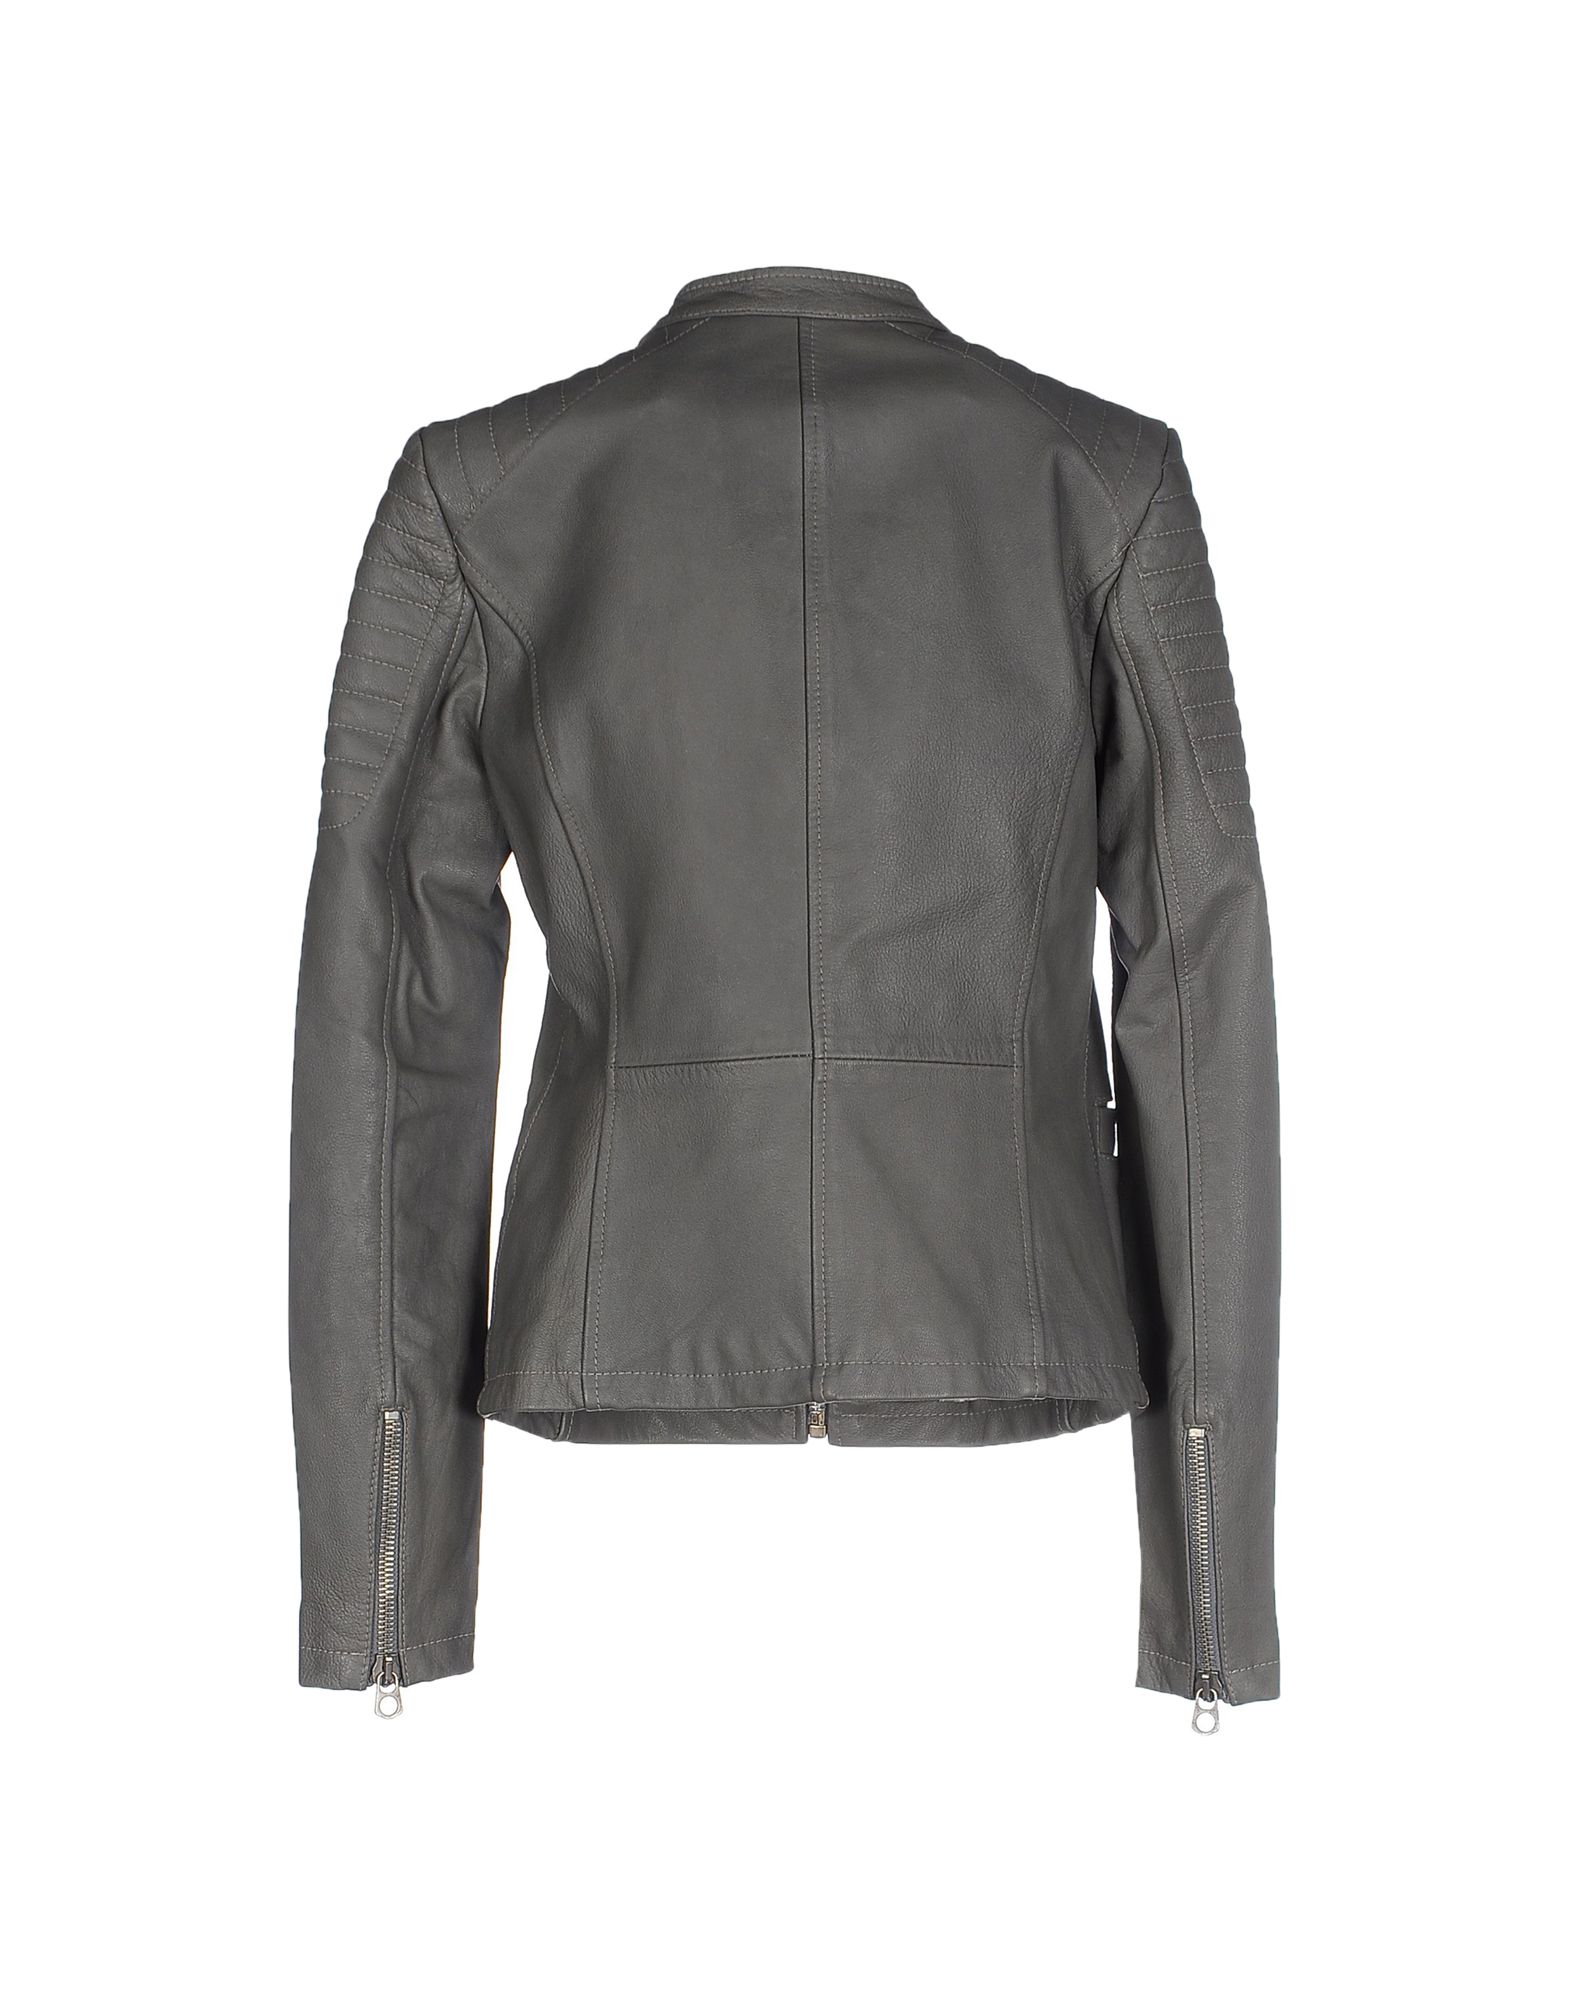 Replay leather jackets